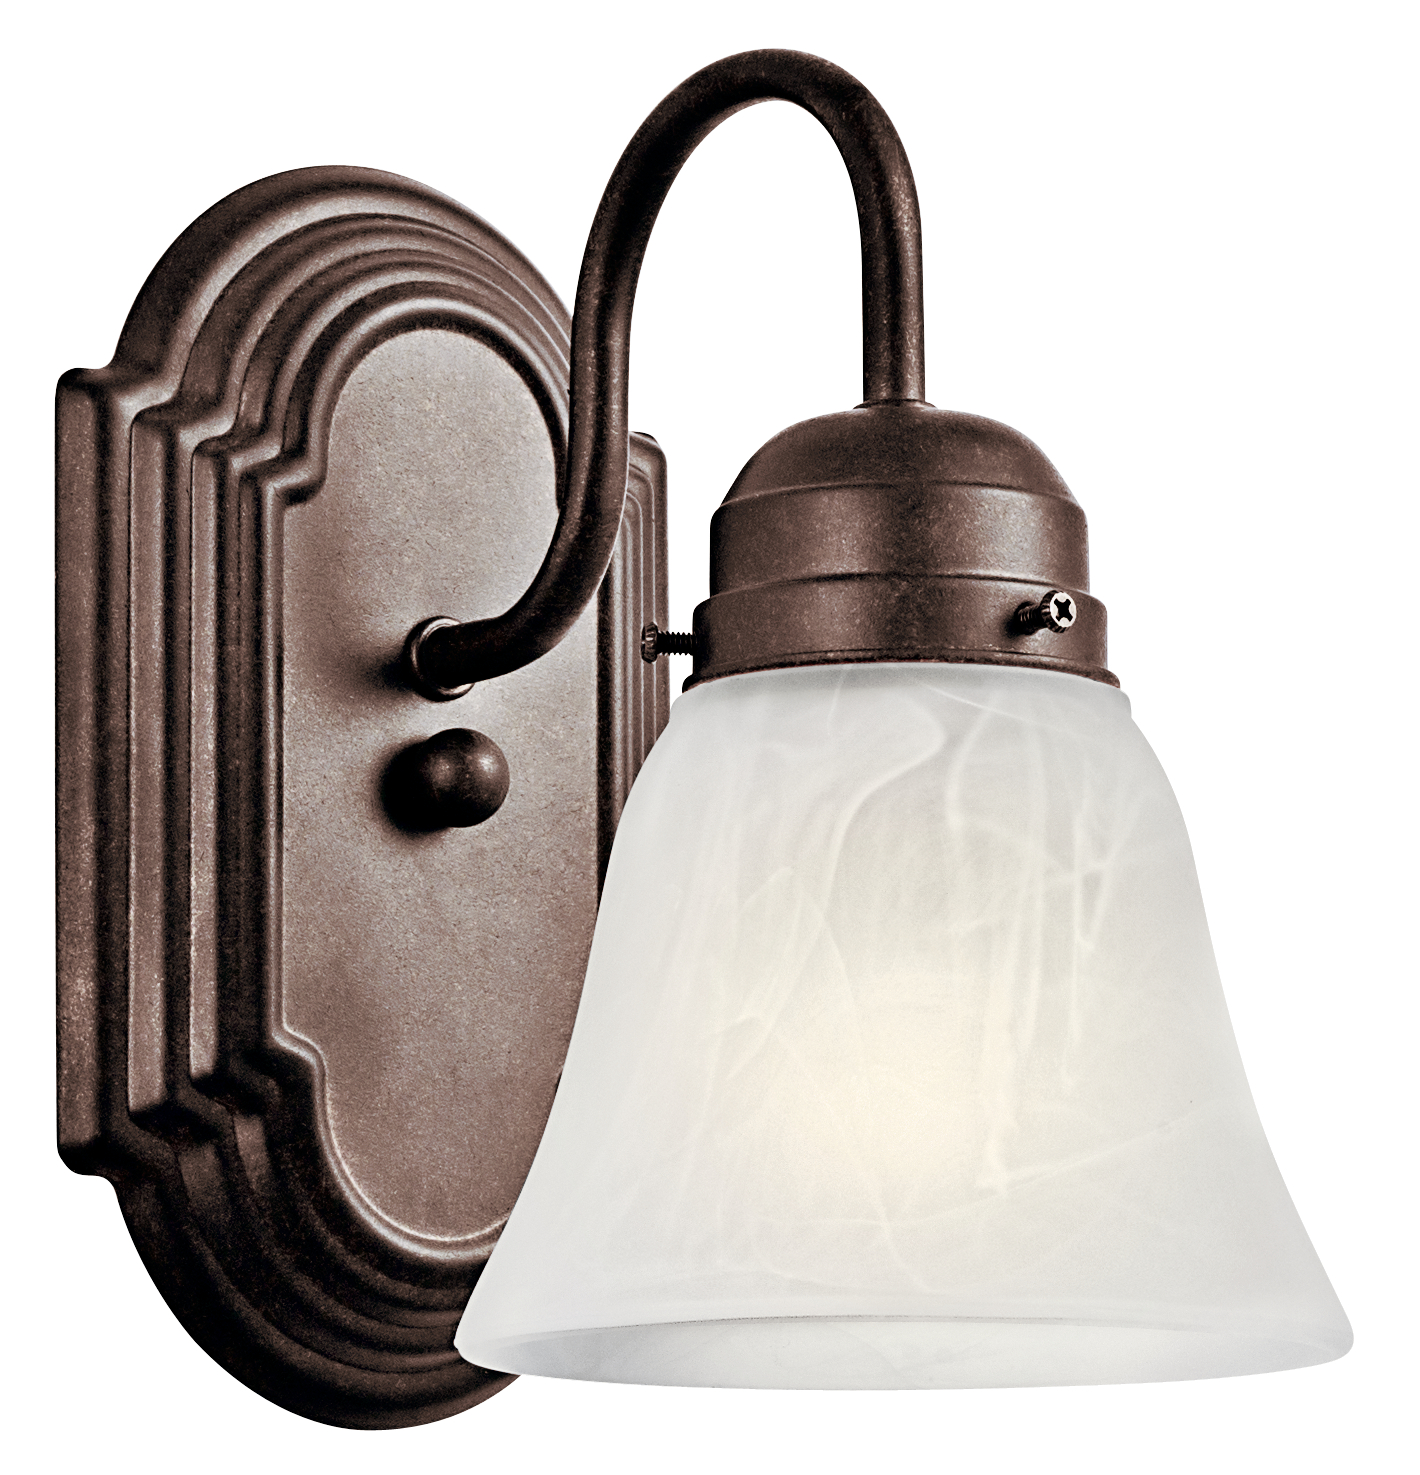 Kichler Outdoor Damp Wall Light with Alabastser Swirl Shade - Tannery Bronze (5334TZ)